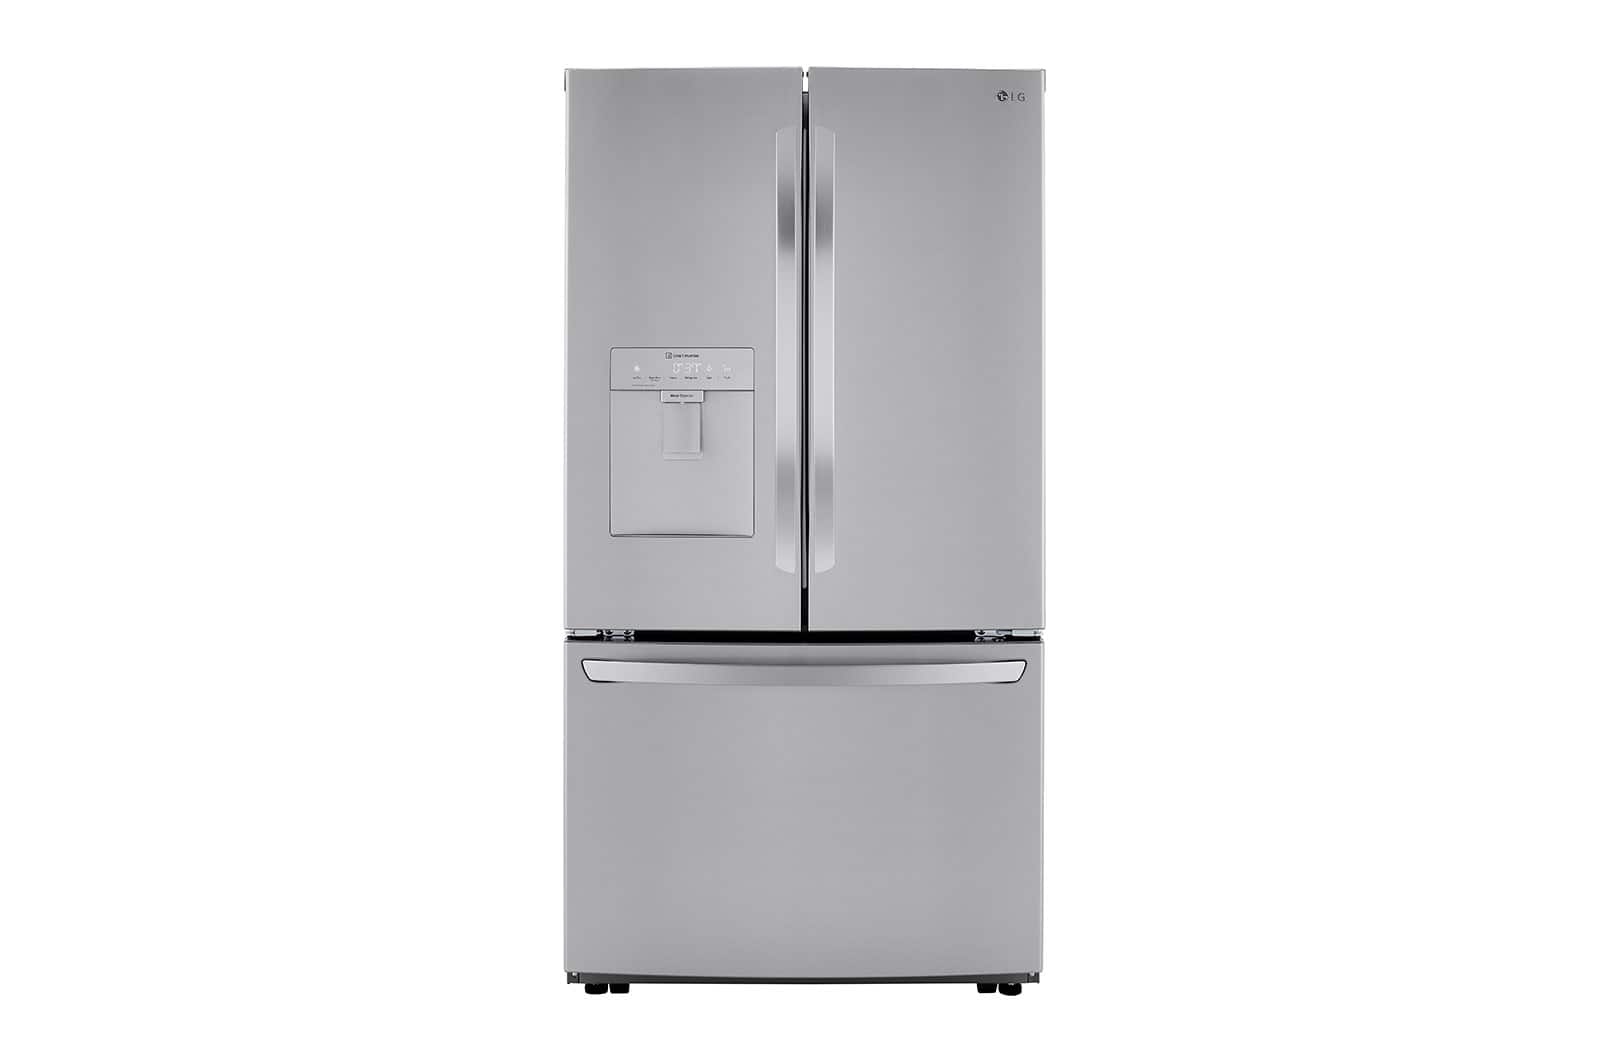 LG 29 cu. ft. Smart Wi-Fi Enabled French Door Refrigerator Water Dispenser at Costco $1649.99